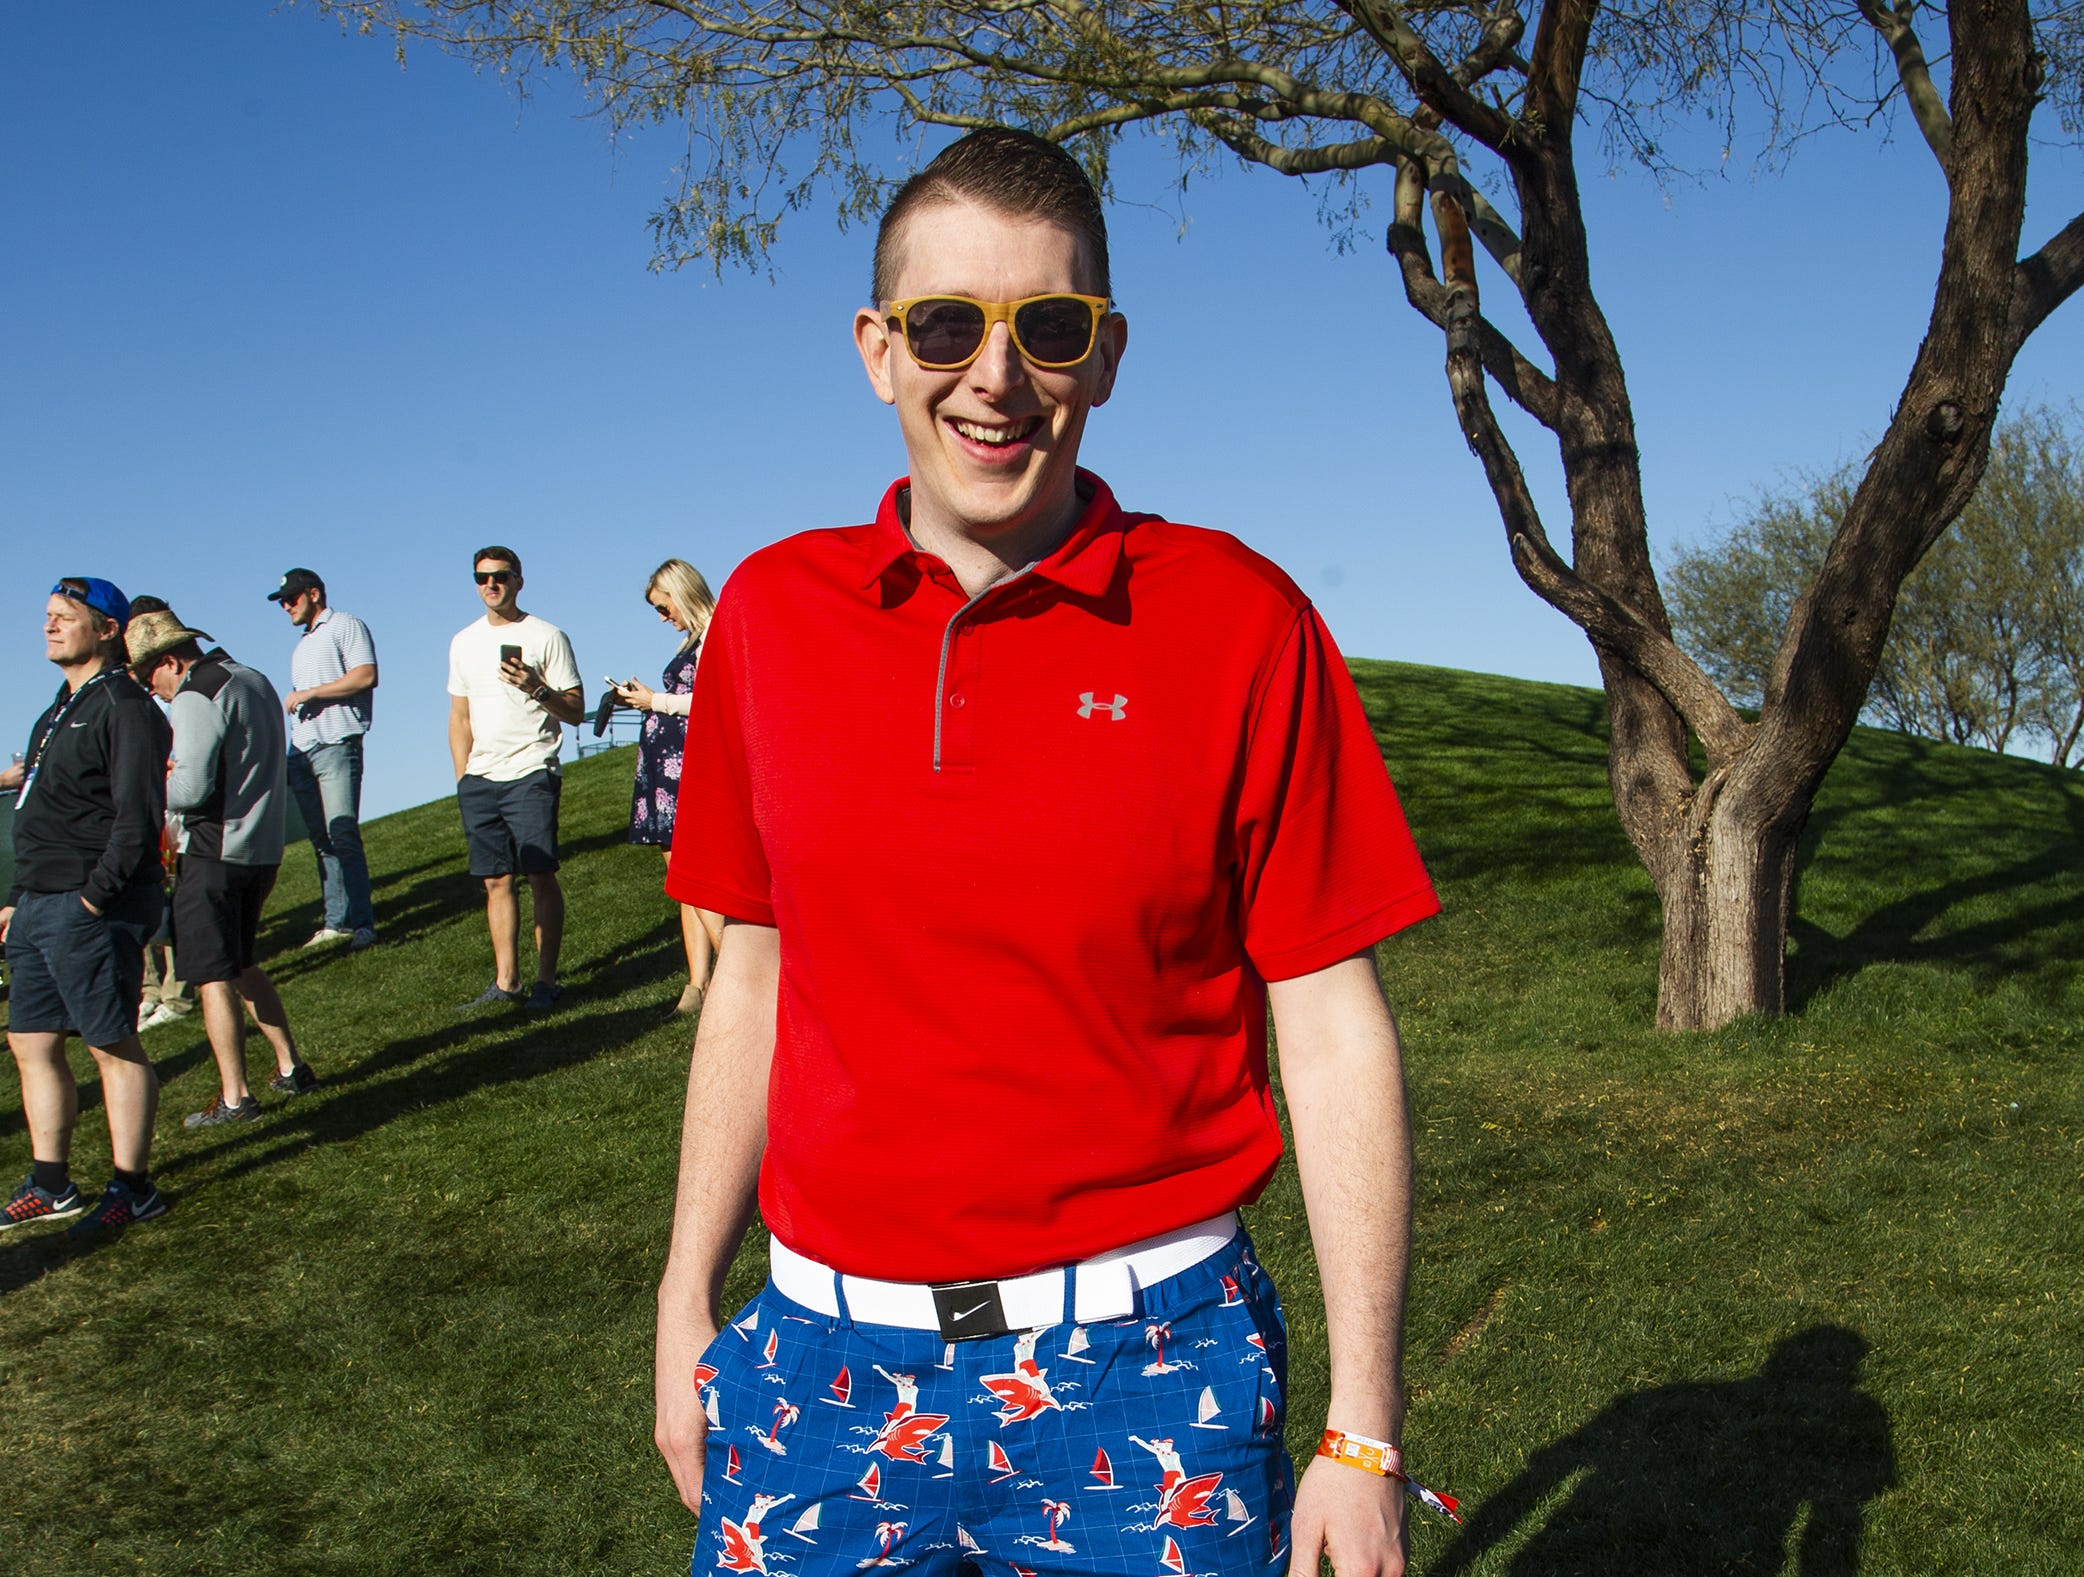 Ryan Little, 35, Mesa, wears his shark pants during the second round of the Waste Management Phoenix Open at the TPC Scottsdale, Friday, February 1, 2019.